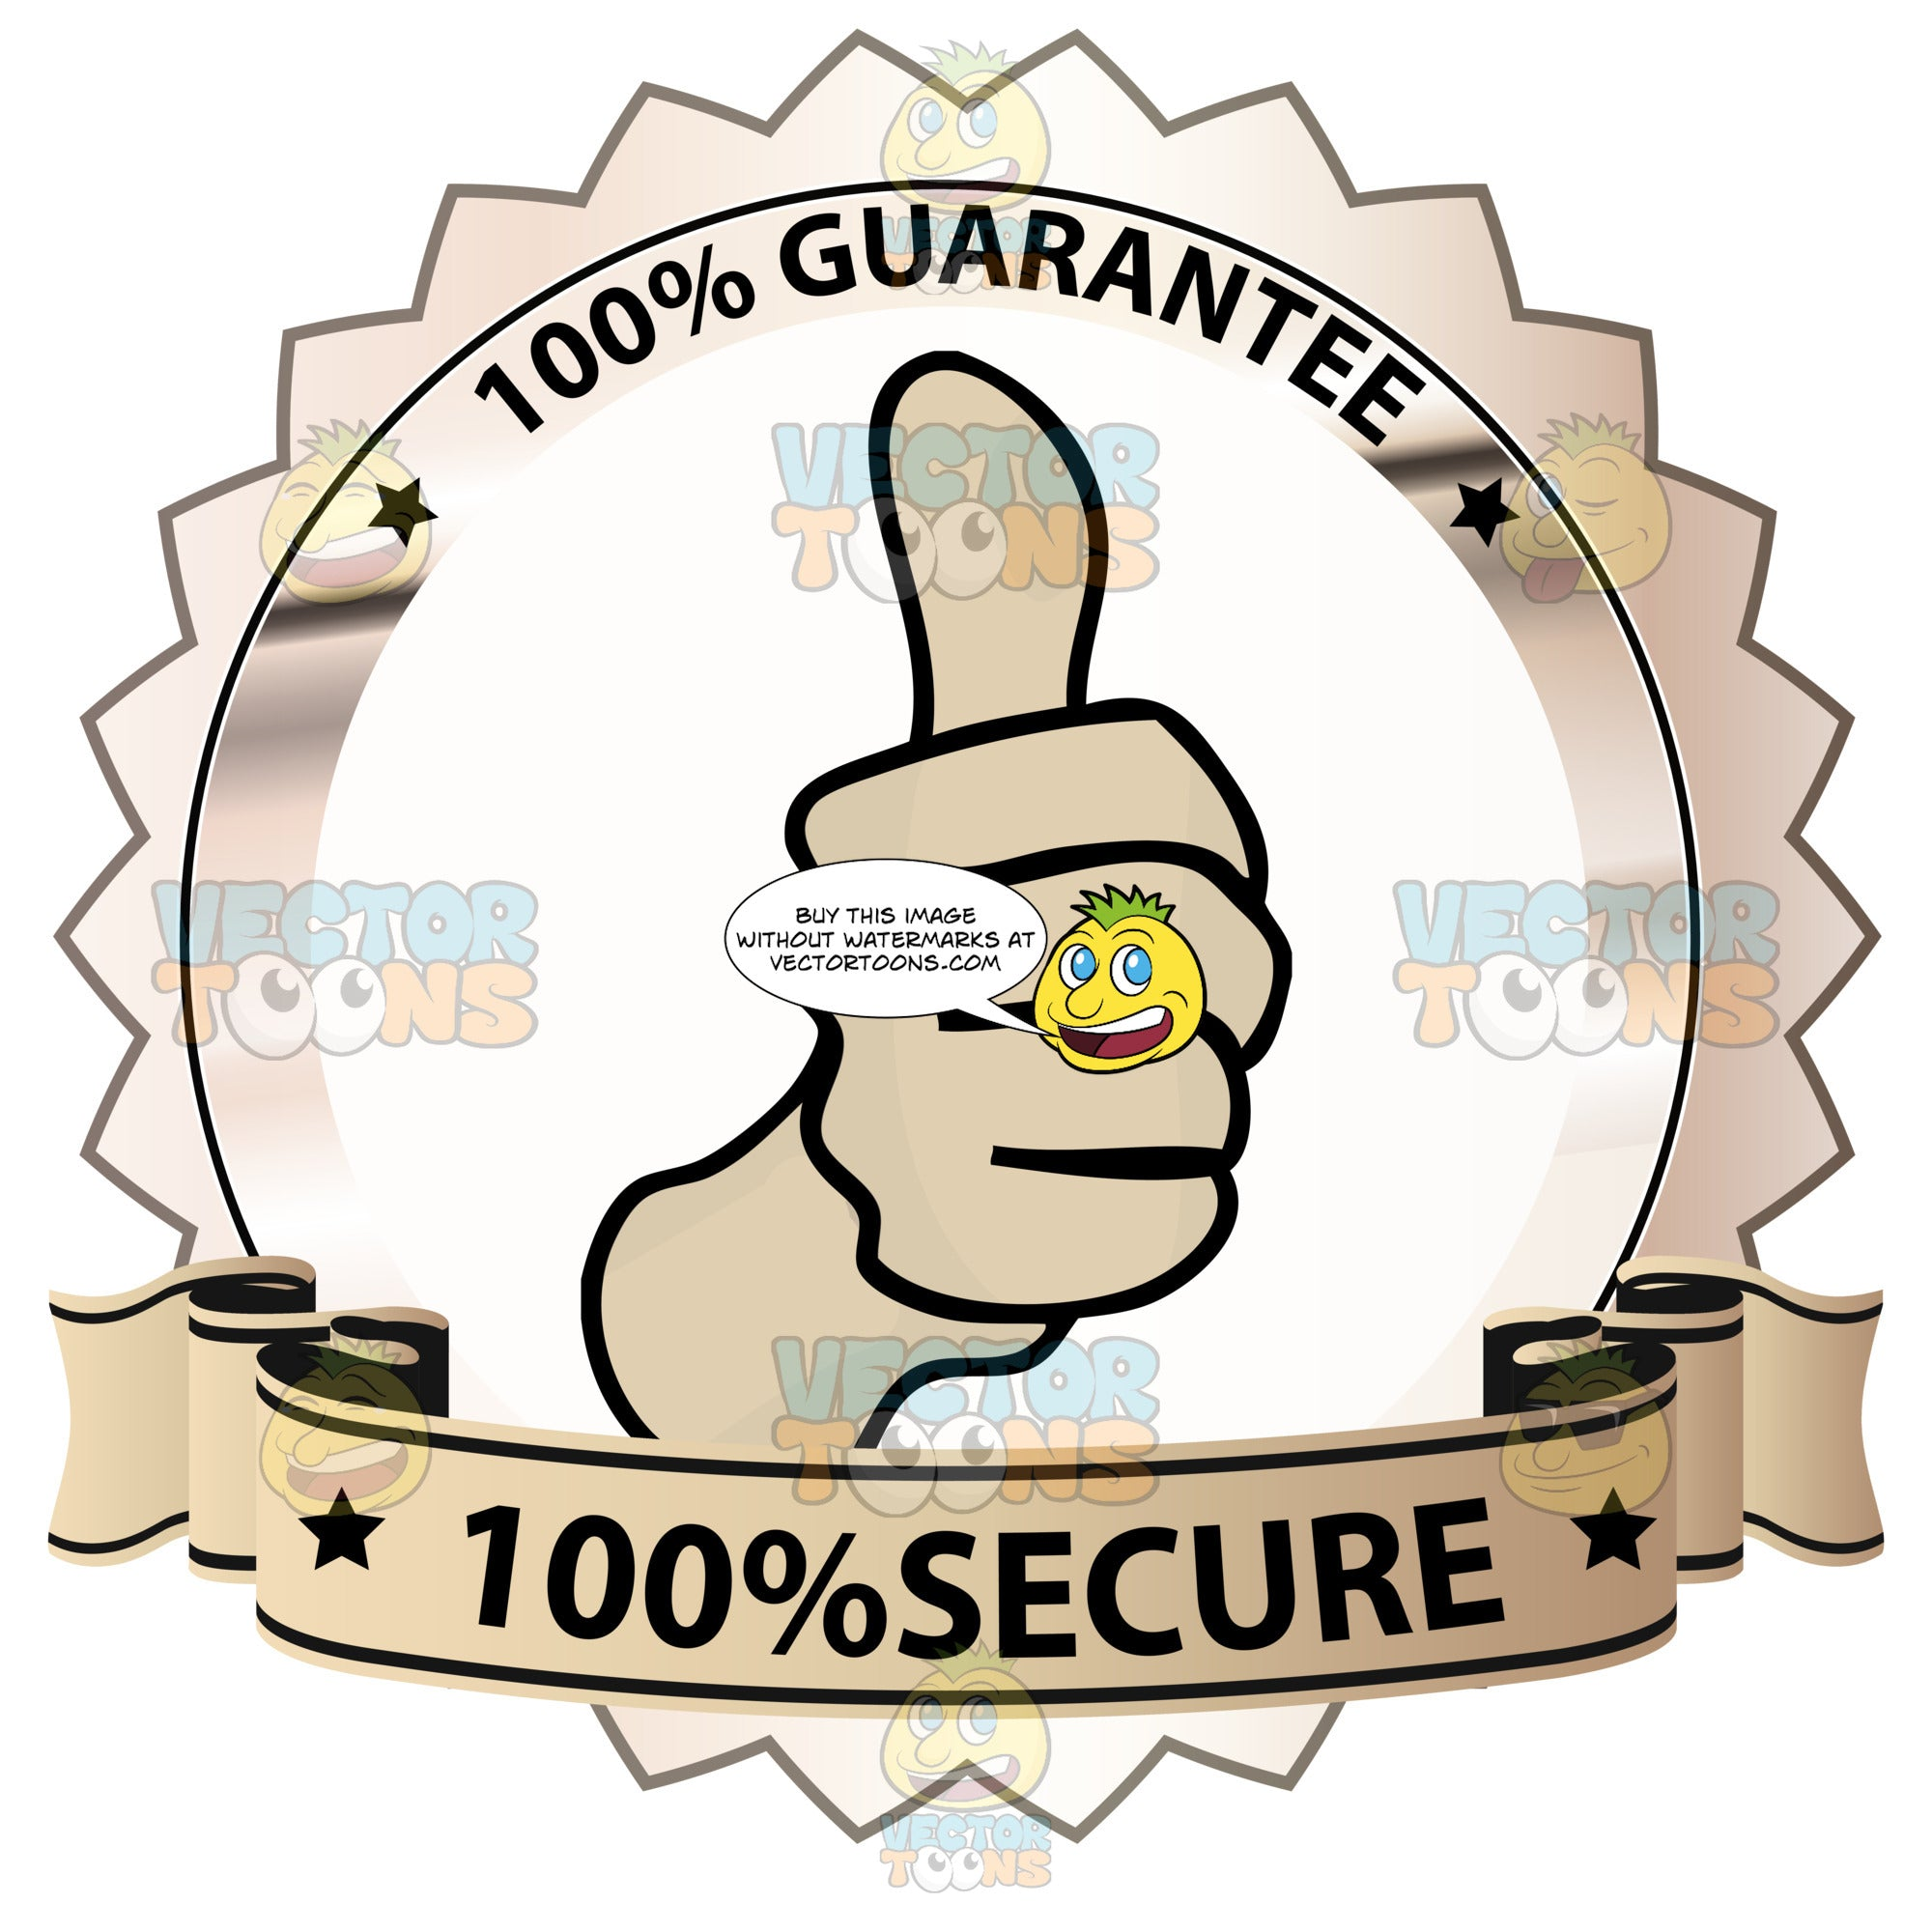 Thumbs Up Sign In Center Of Bronze Metallic Badge With 100 Percent Guarantee In Border And '100 Percent Secure' On Light Orange Gradient Ribbon Scroll